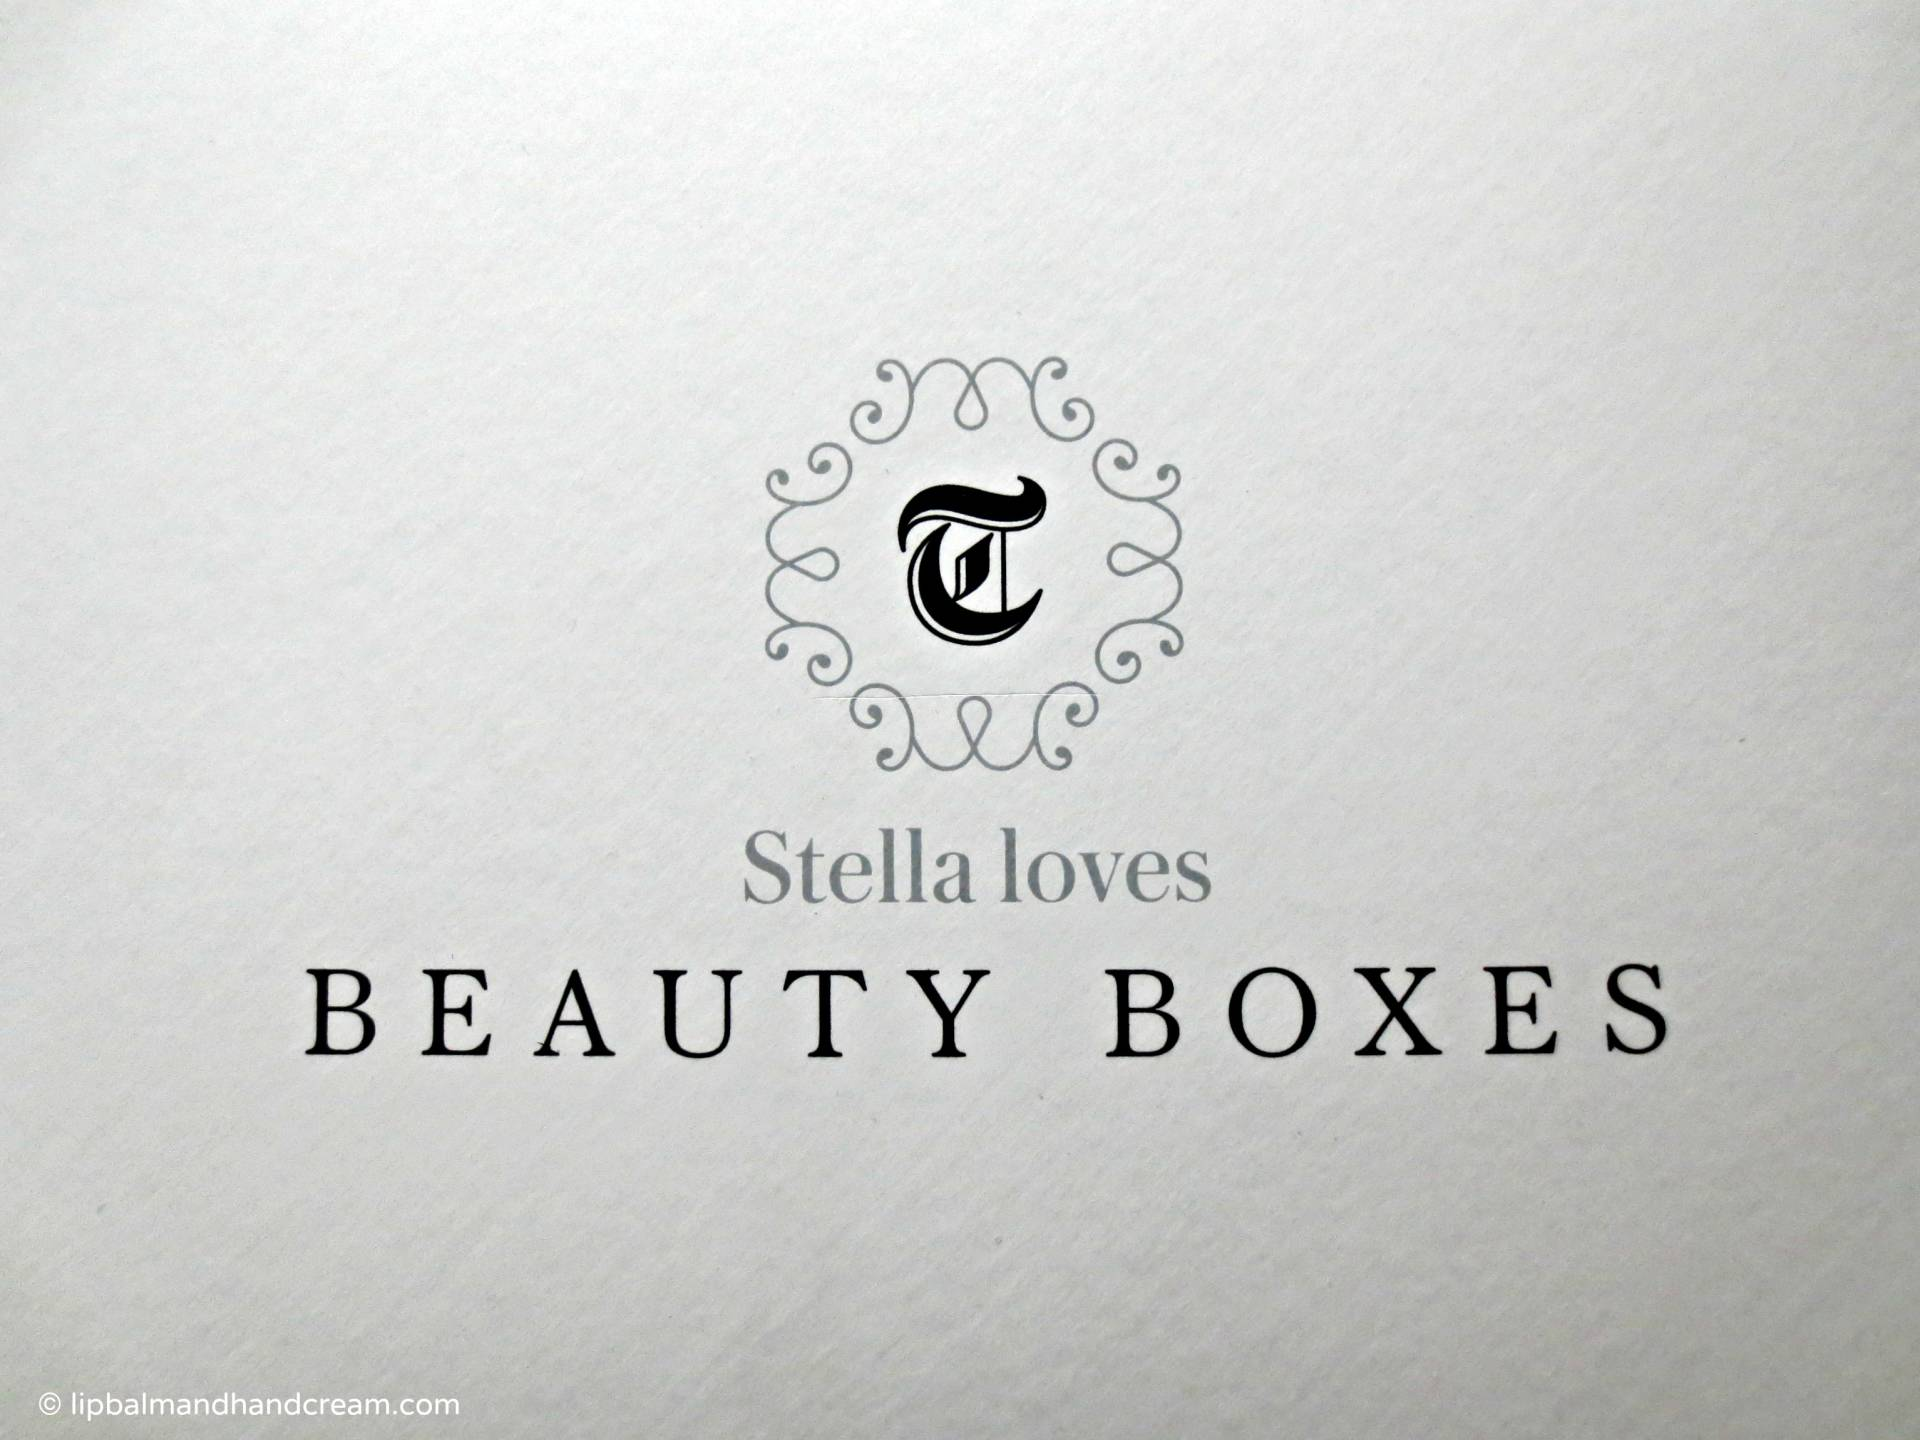 Stella loves beauty box